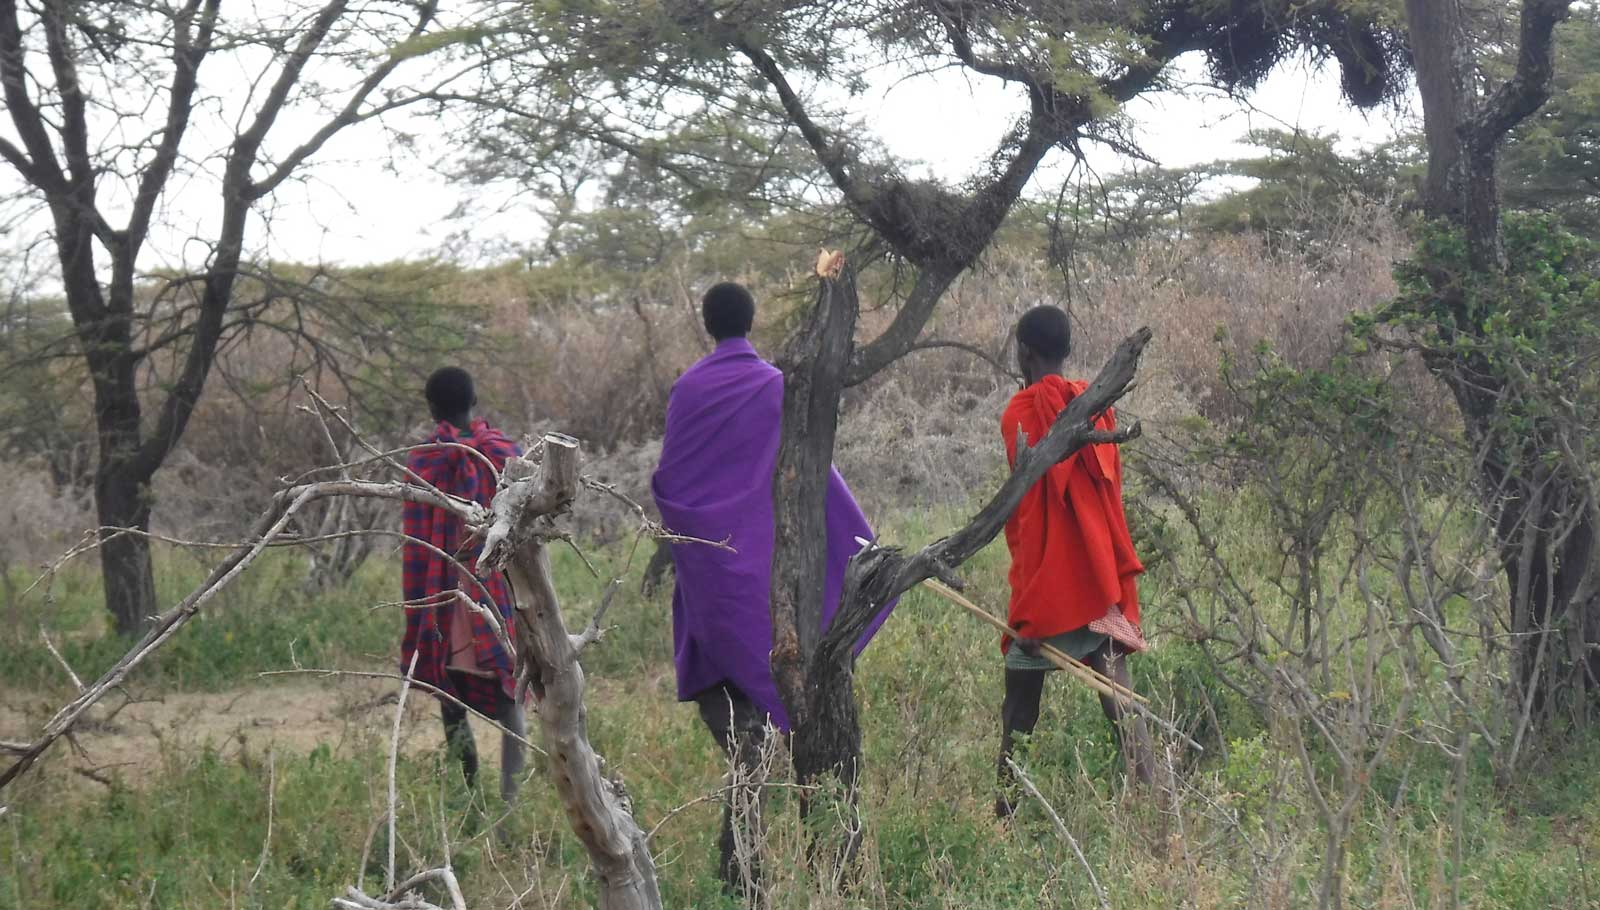 Young herders in Ngorongoro. Credit: The Oakland Institute